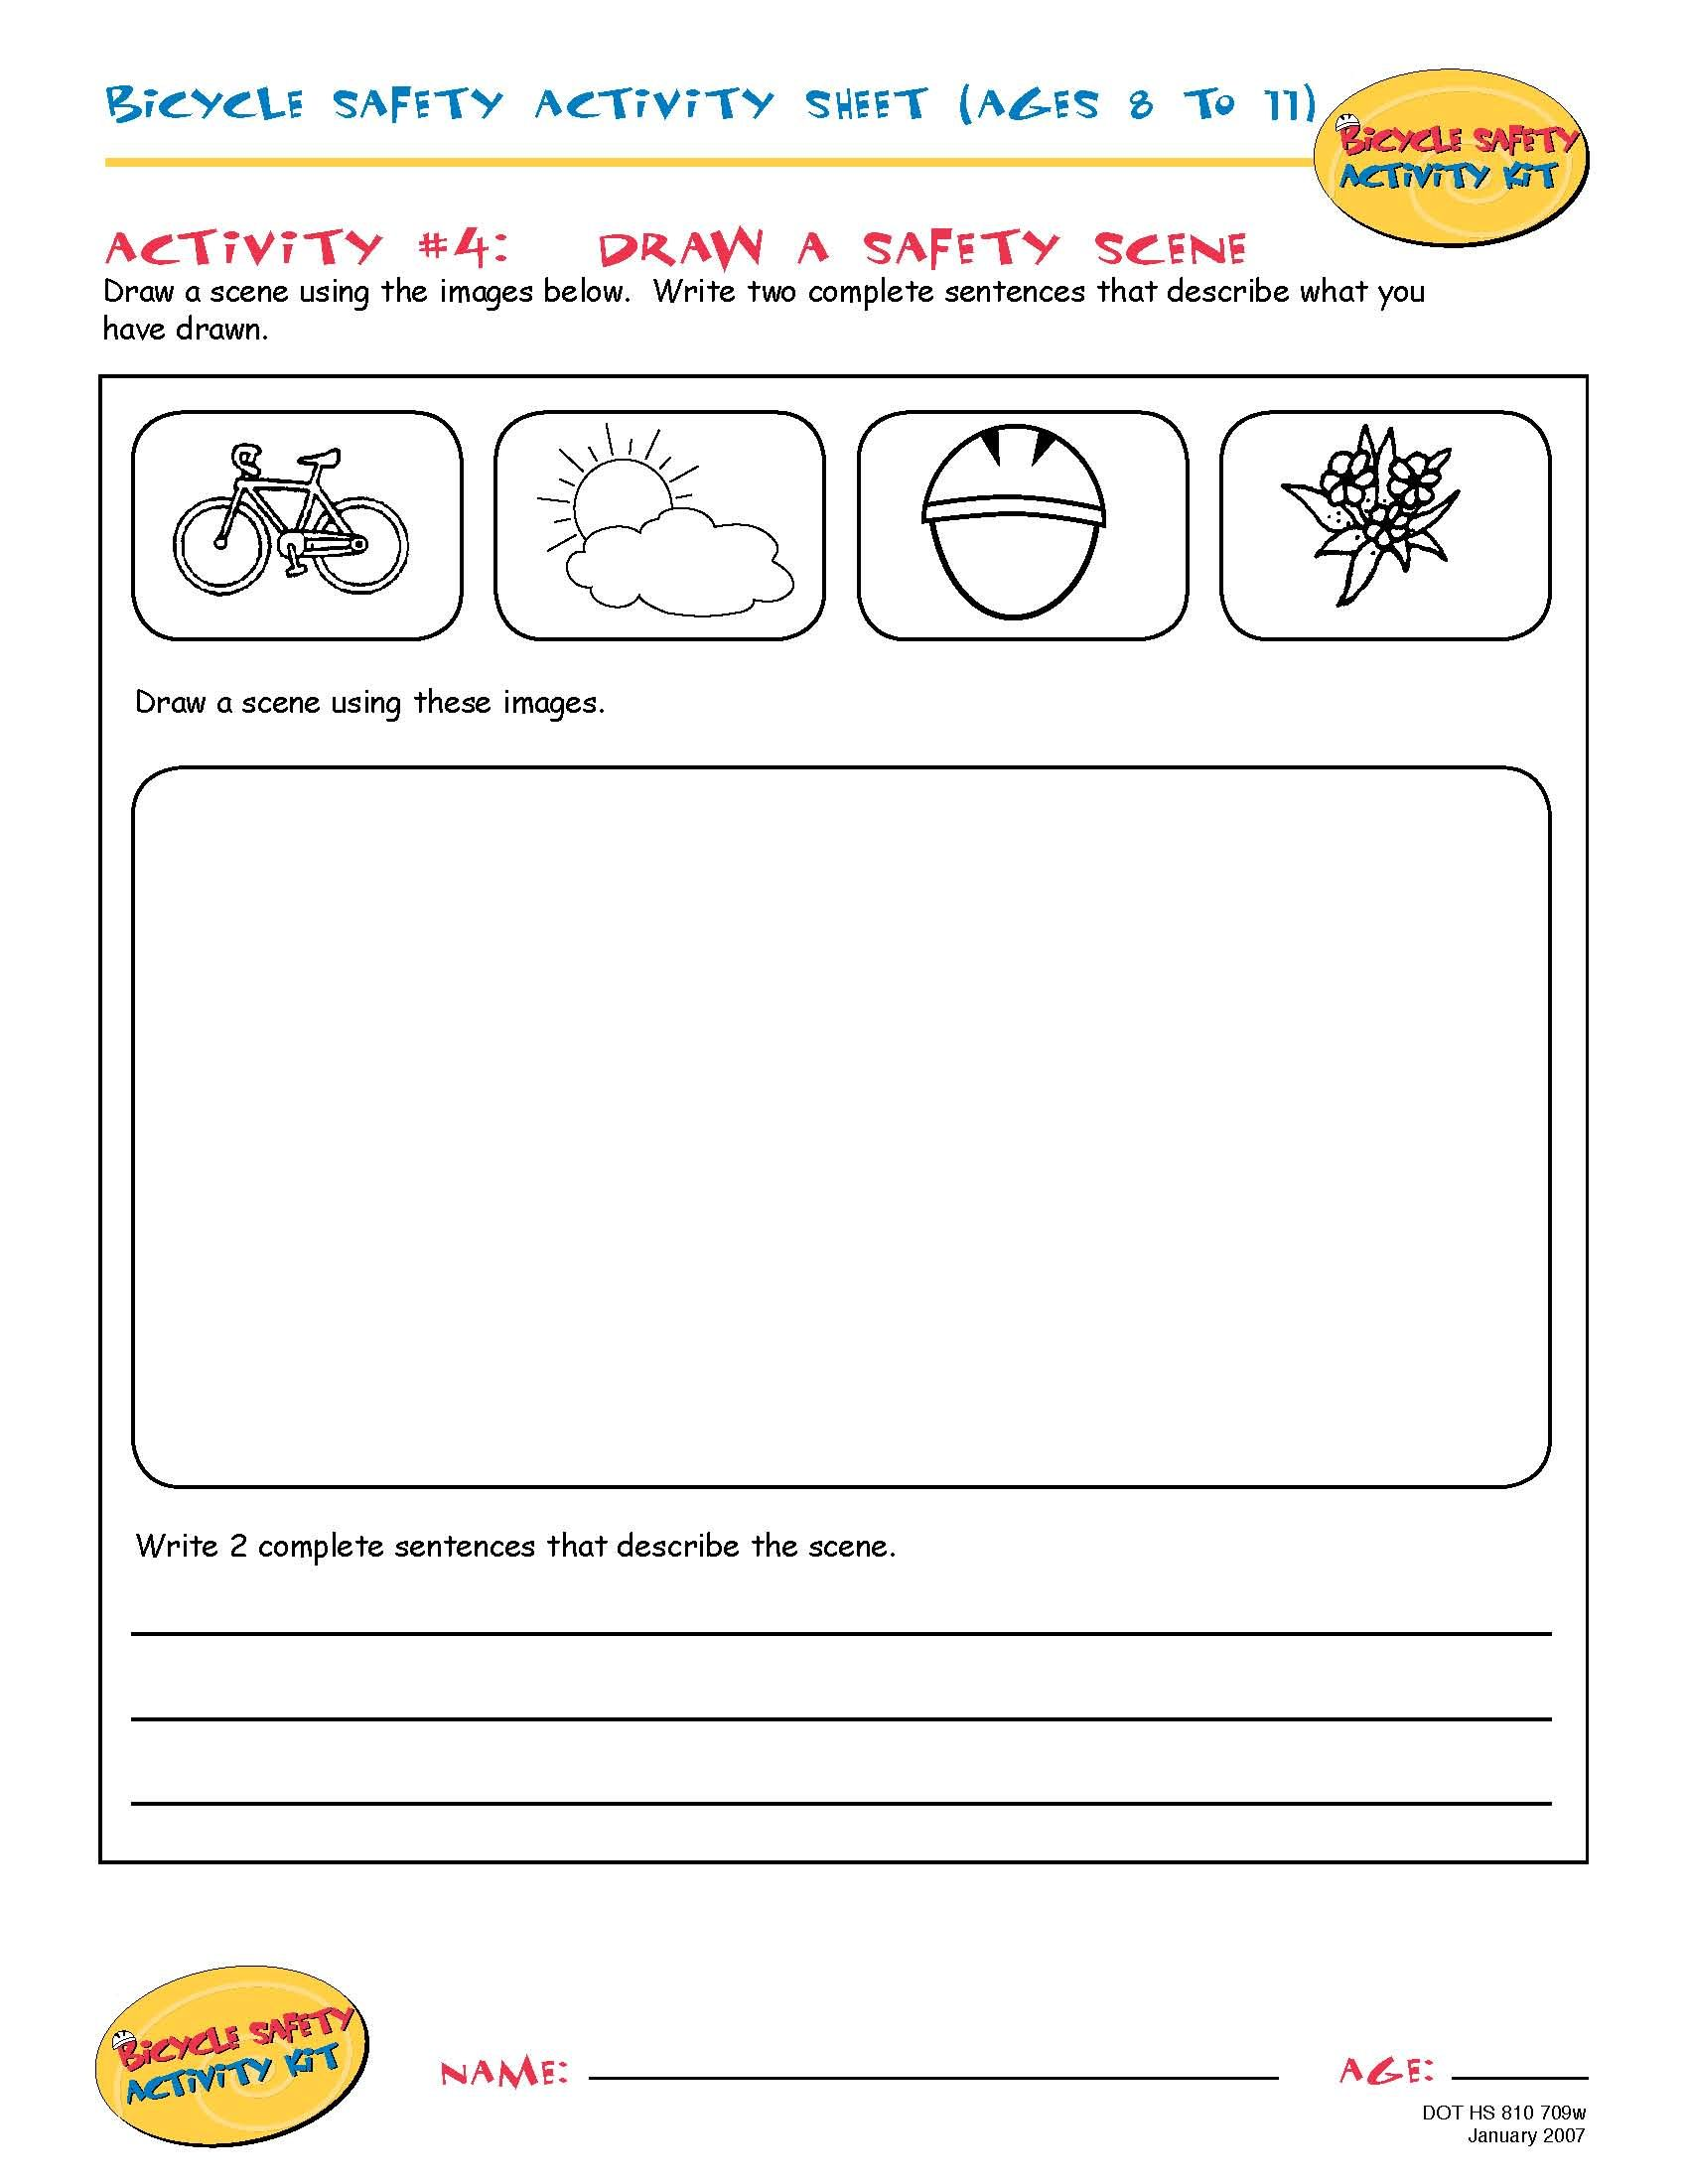 Bike Safety Activity Sheet Ages 8 To 11 Draw A Safety